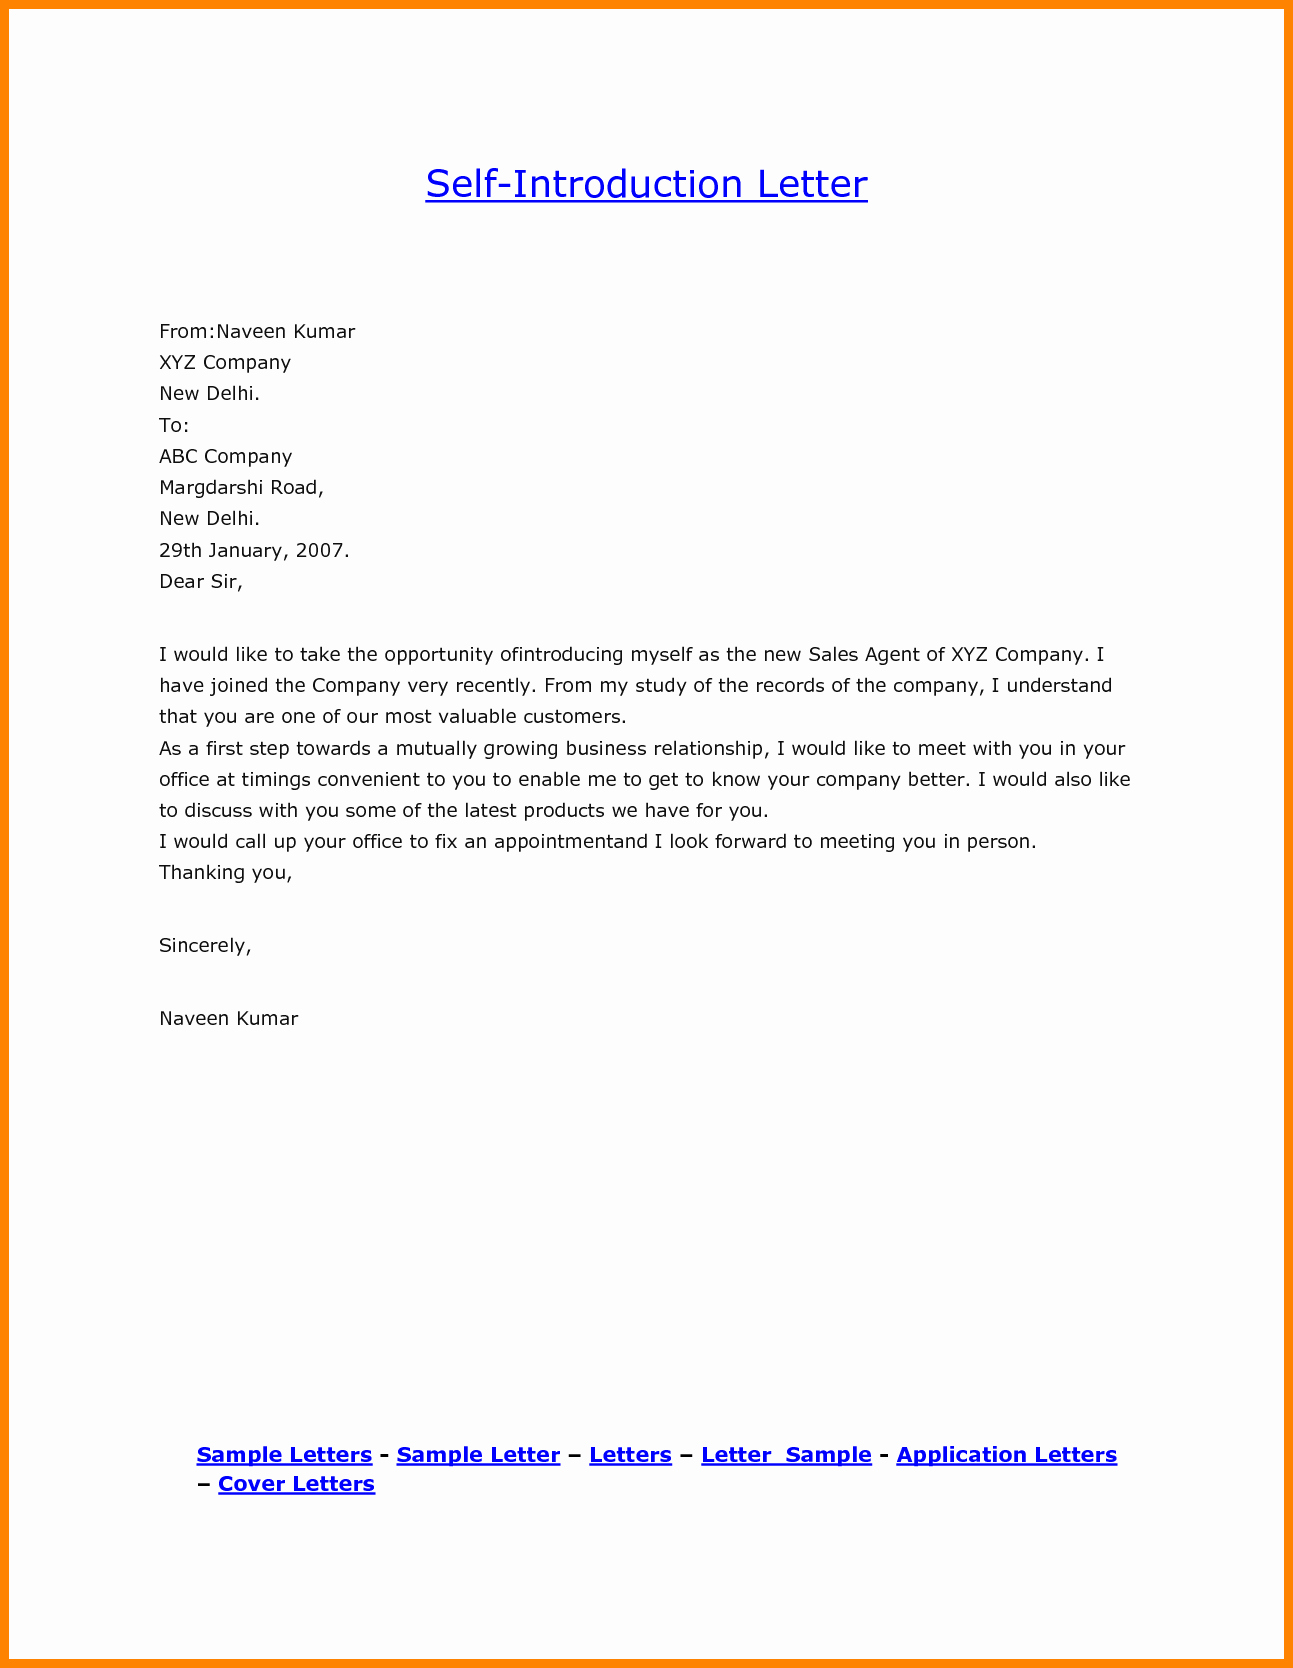 Letter Of Introduction for Yourself Best Of 5 Self Introduction Email to Colleagues